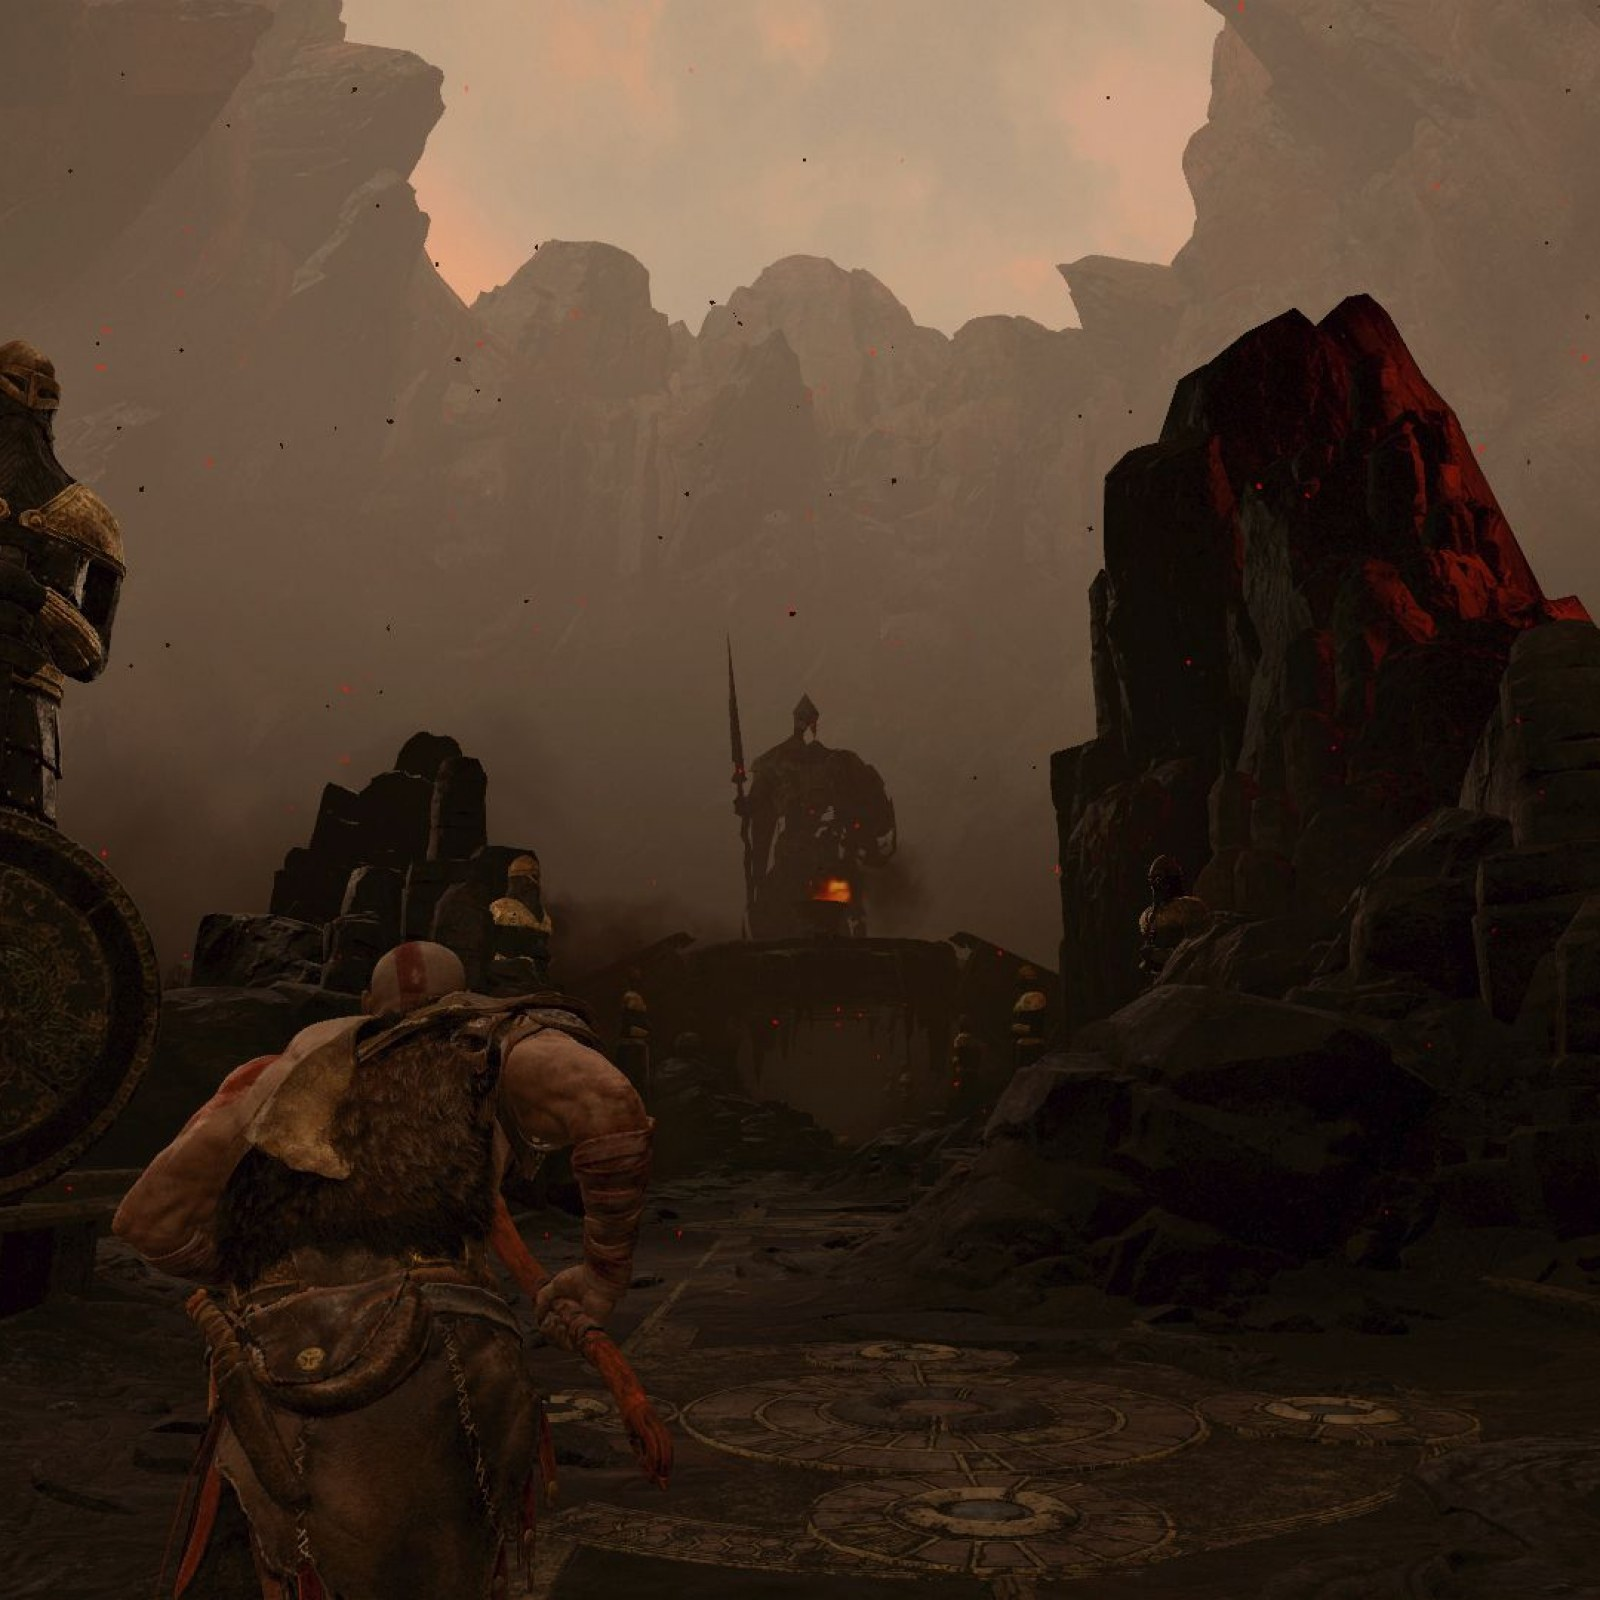 God of War' Frozen Flame: Tips for Beating Magni and Modi